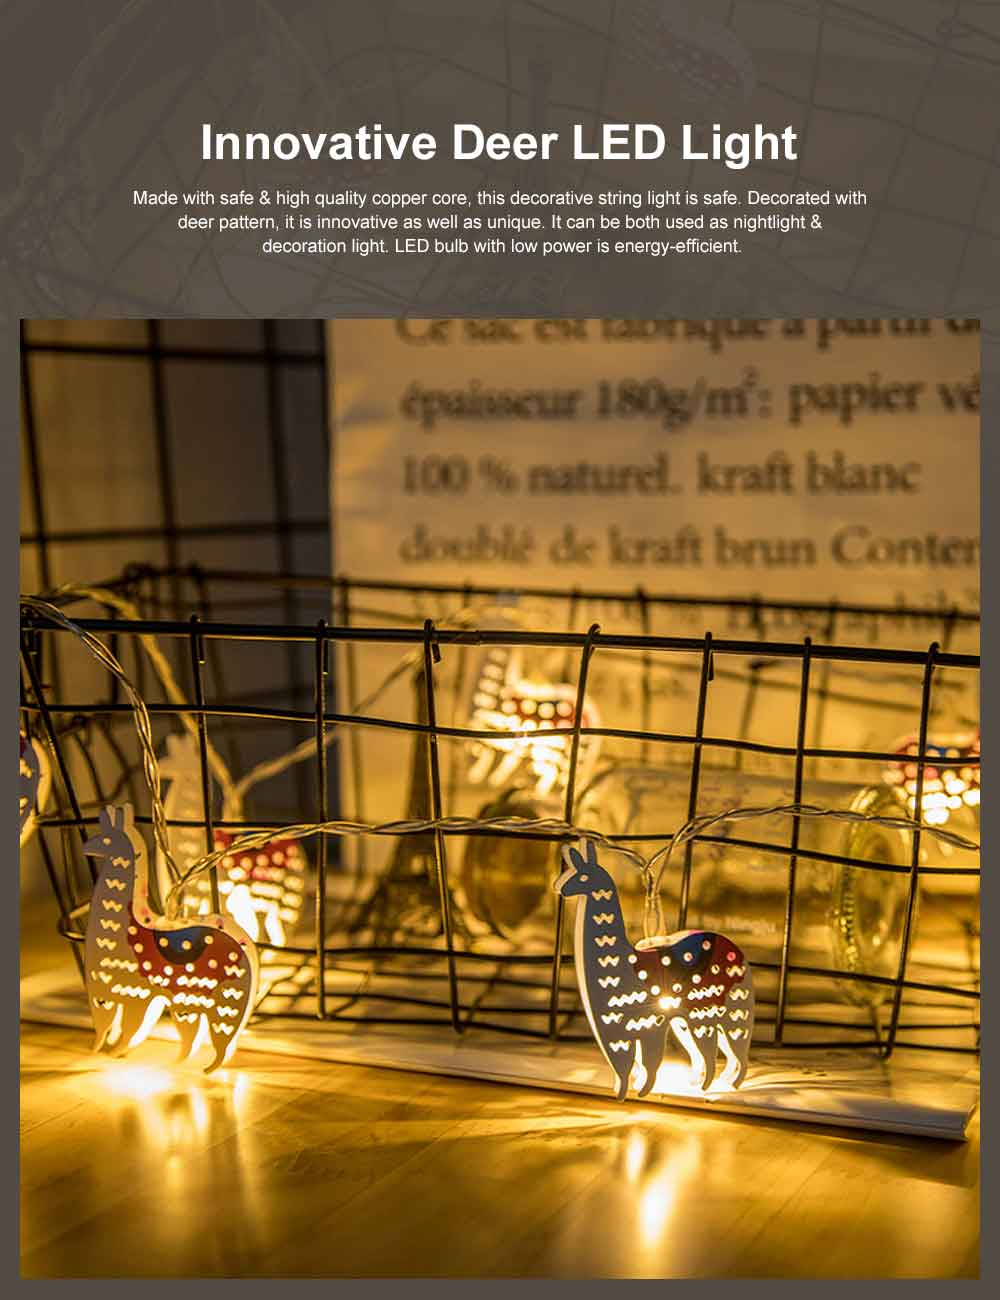 Innovative Deer LED Light Power-Saving Cute Nightlight High Brightness Decoration String Light for Holiday Party Wedding 0